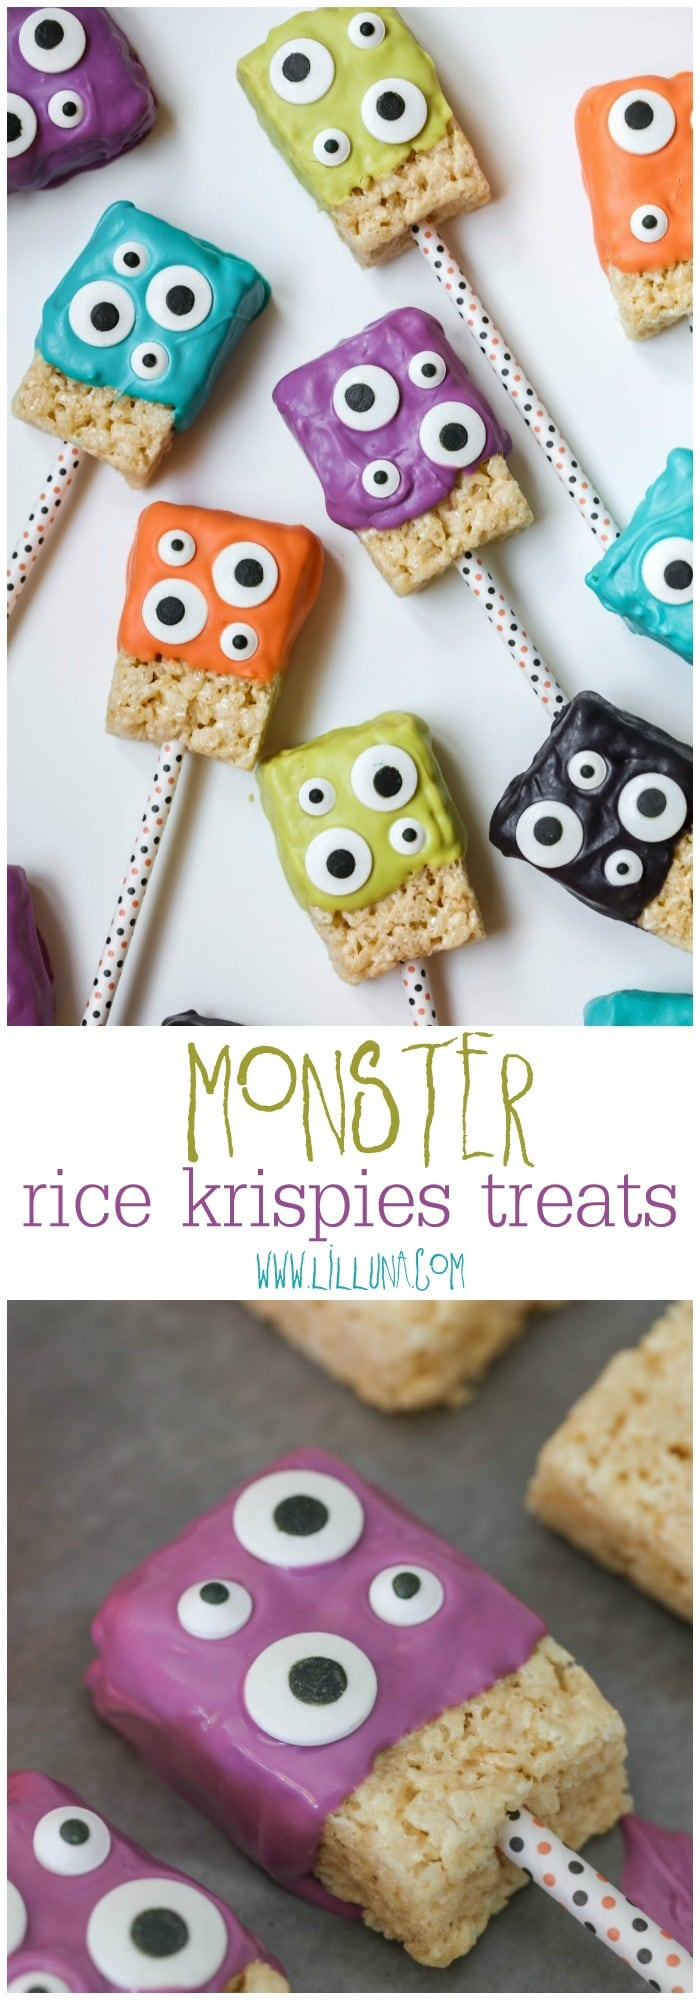 Monster Rice Krispies Treats - a simple, festive and delicious treat perfect for Halloween or Monster parties!